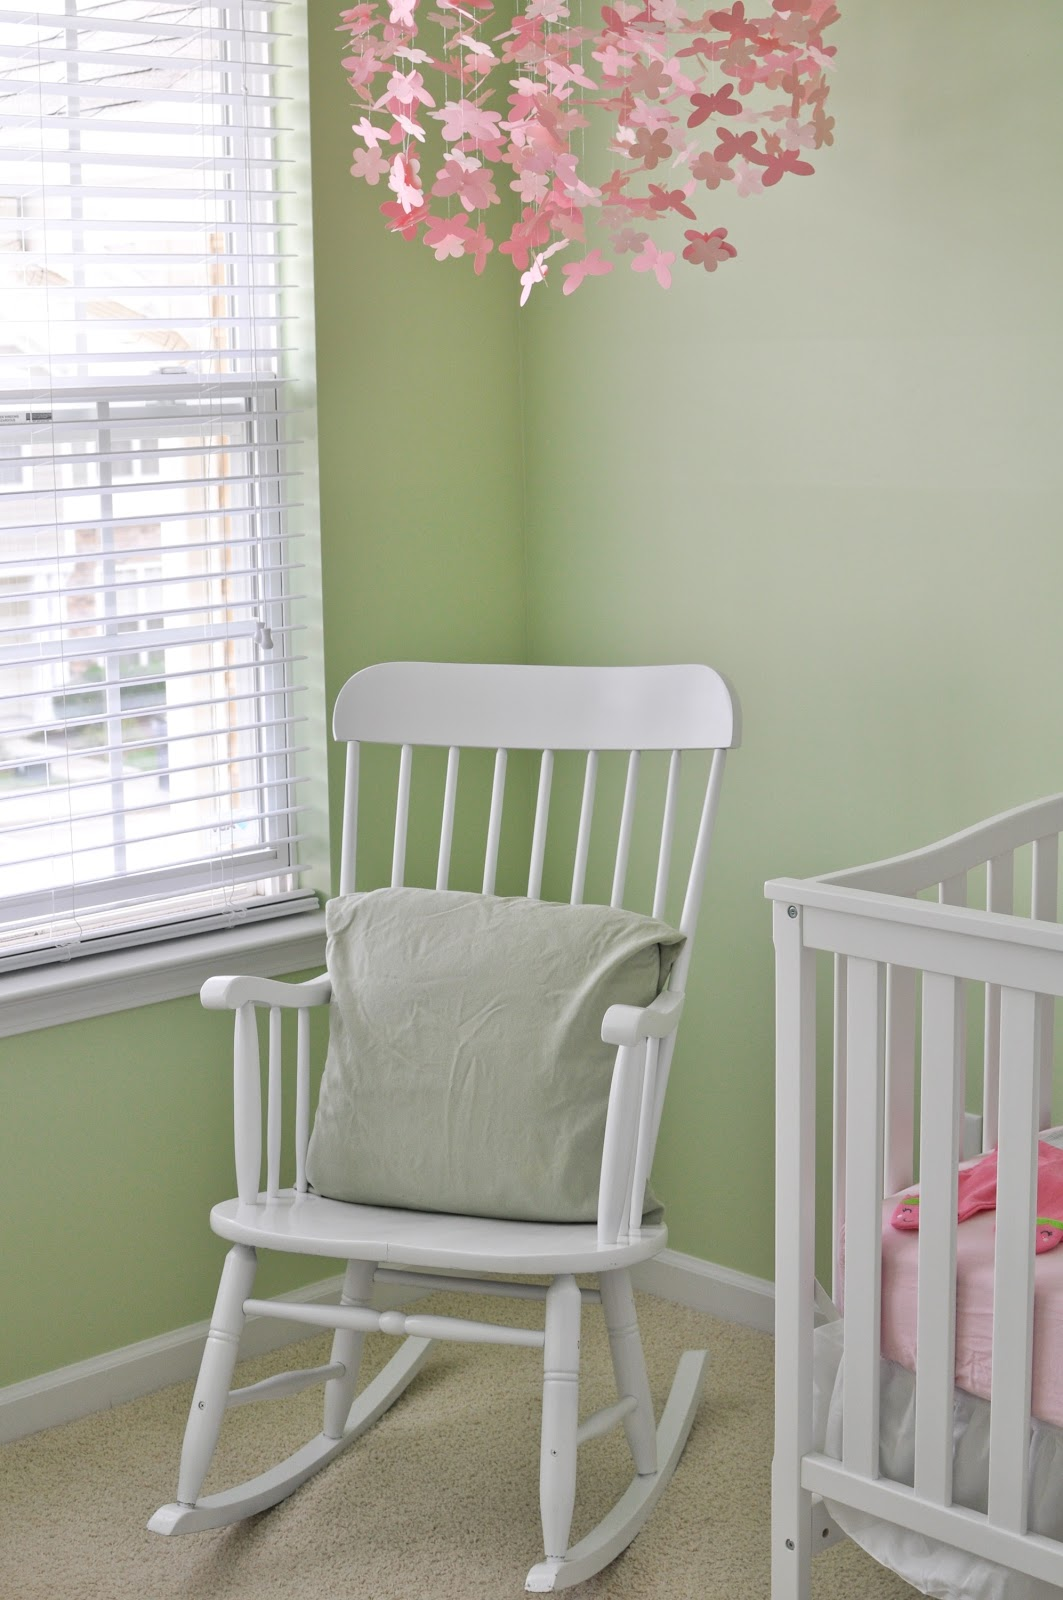 aunt priscilla has a rocking chair best recliner in the world forever after blog december 2012